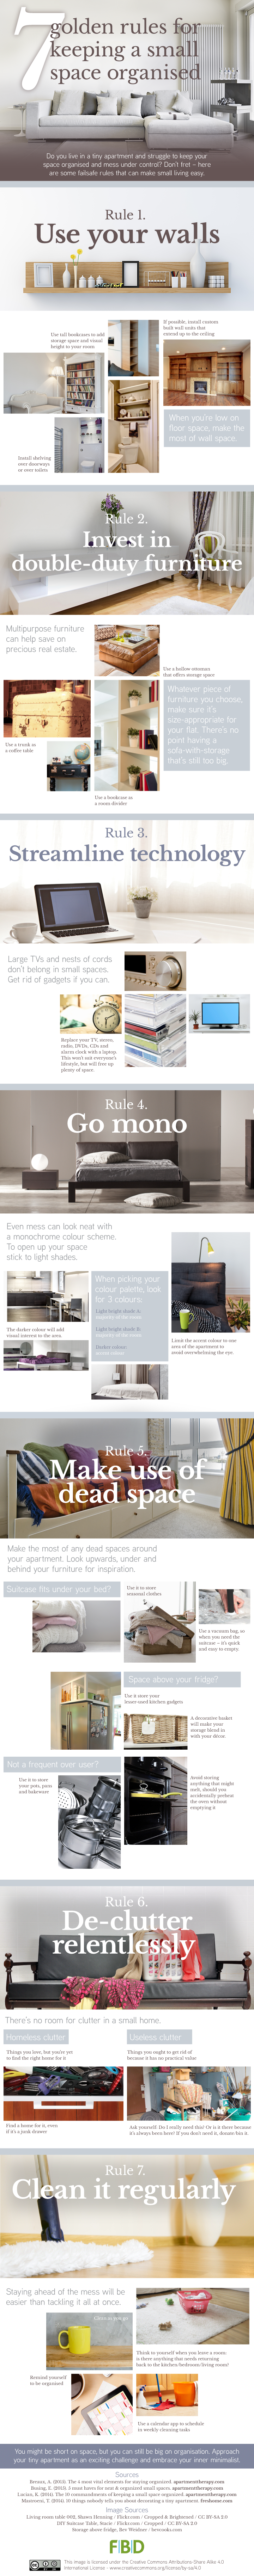 golden rules of keeping a small space organised infographic